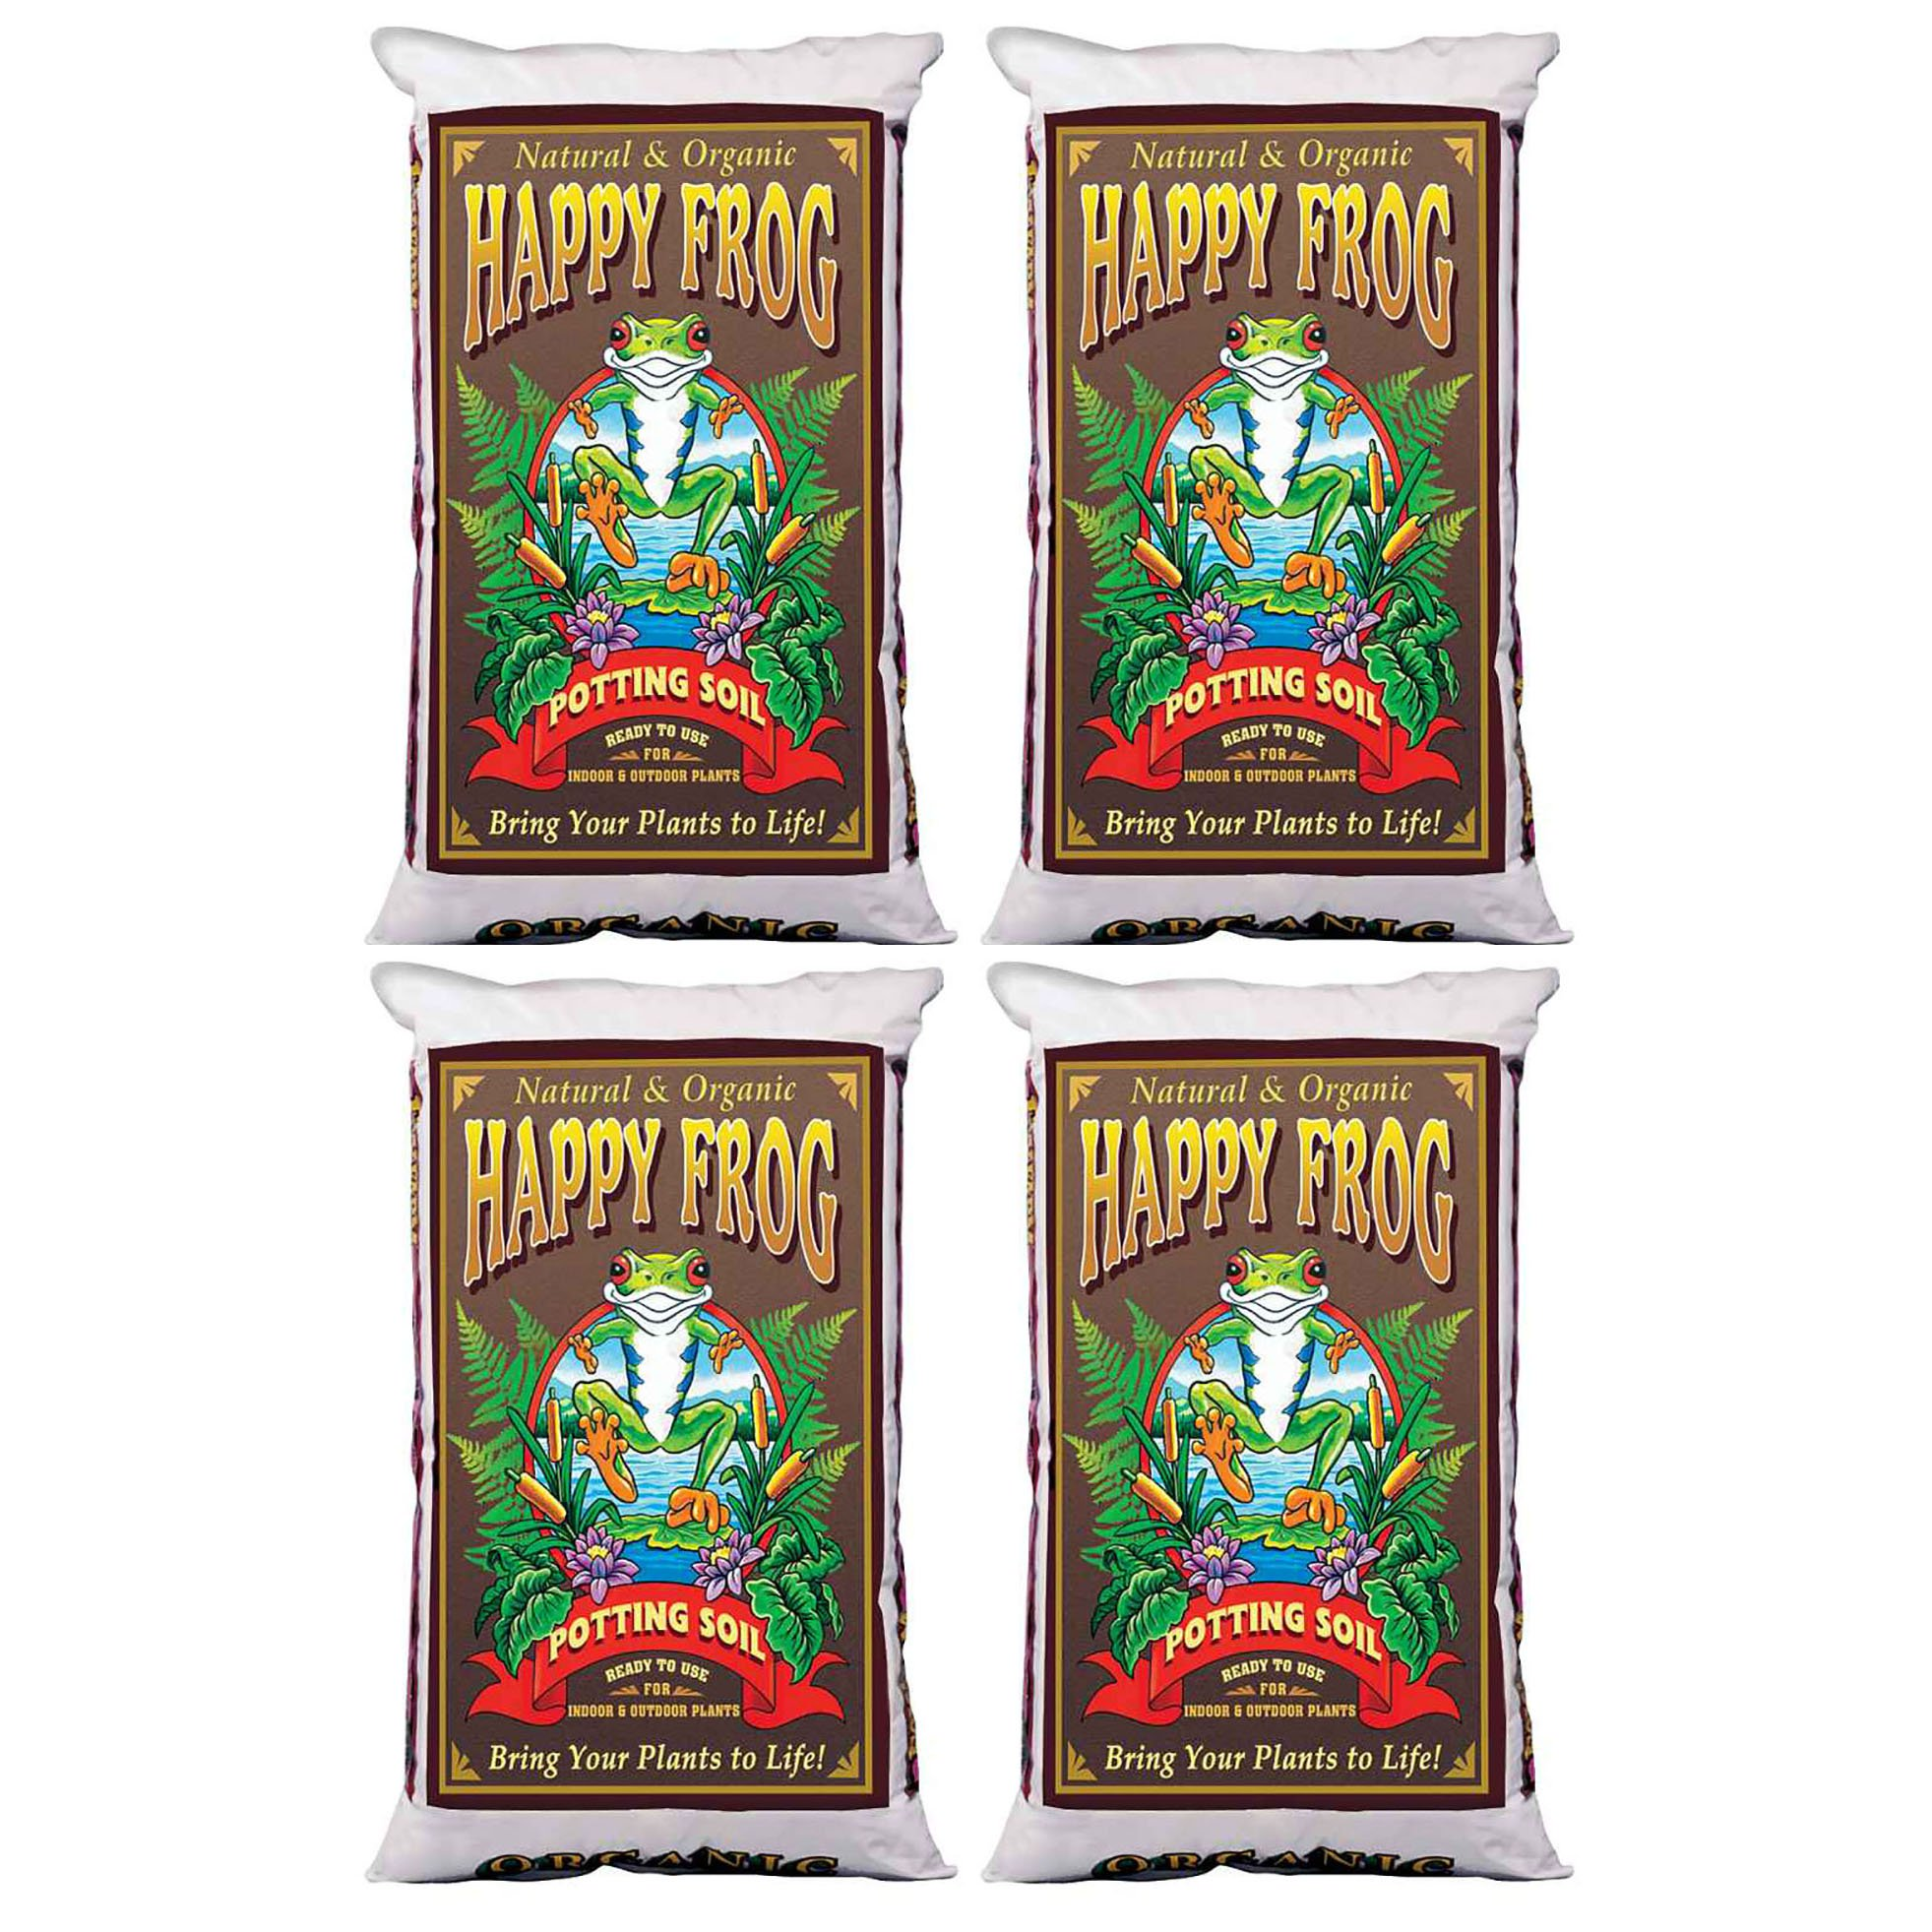 FoxFarm Happy Frog Nutrient Rich Rapid Growth Potting Soil, 8 Cu Feet | FX14081